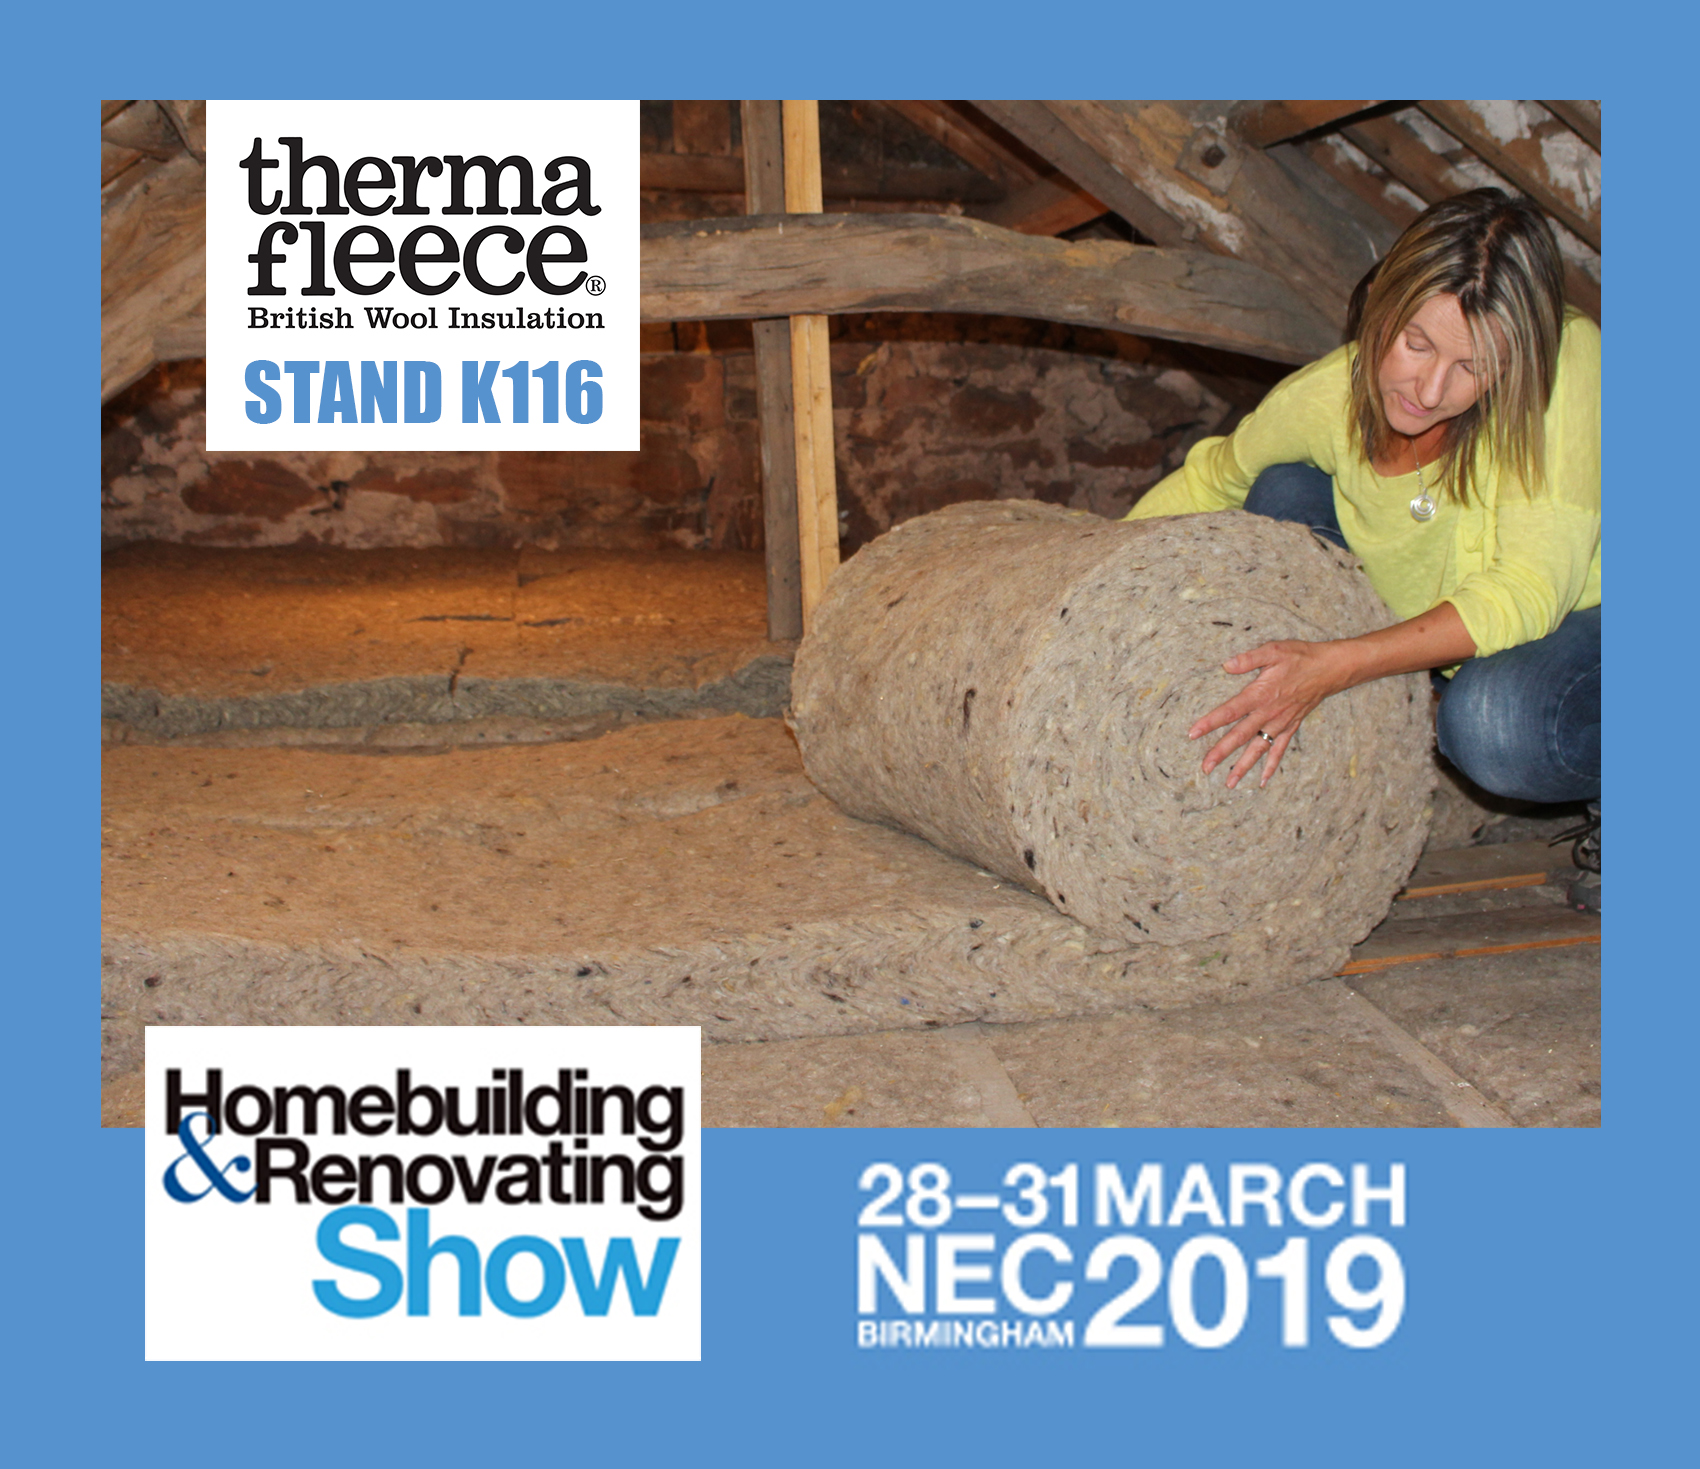 Get 2 free tickets to Home Building & Renovating Show